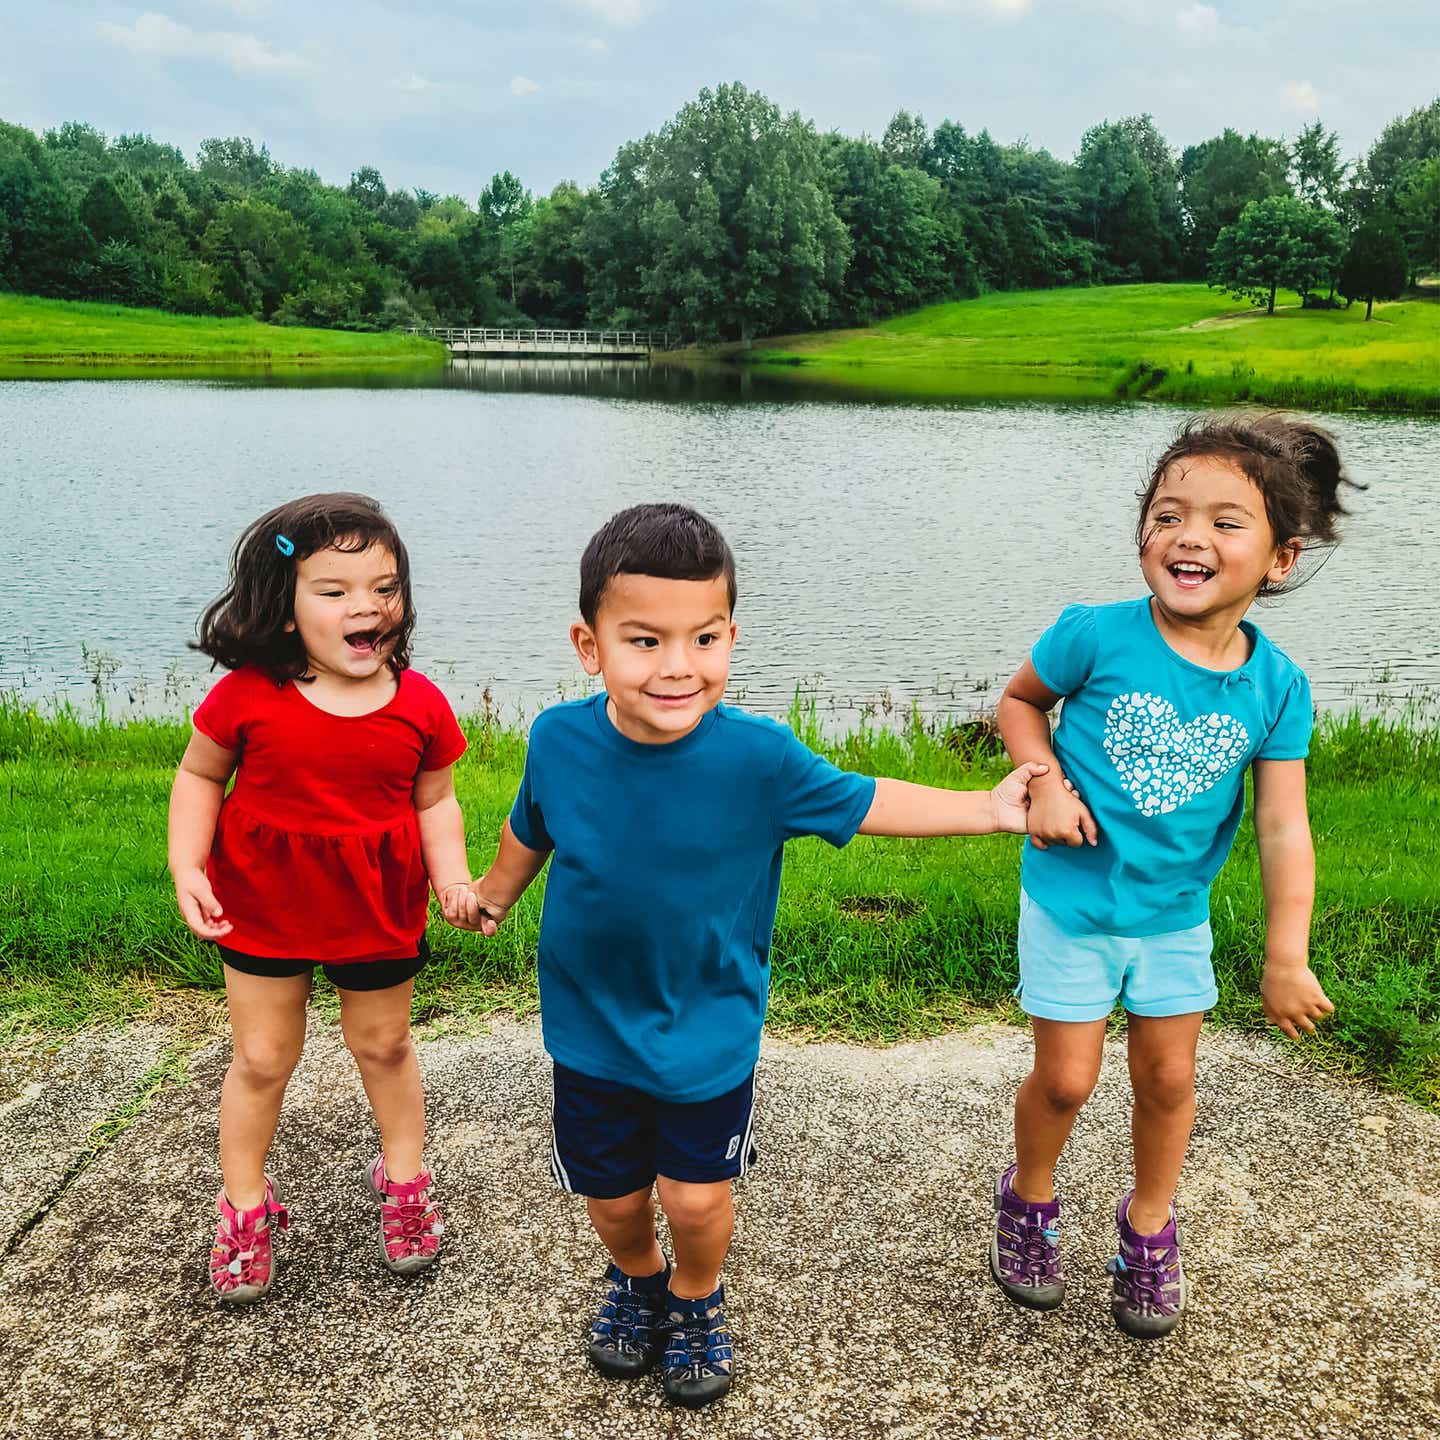 Angelica's three children smile happily in front of a pond in their RV park.